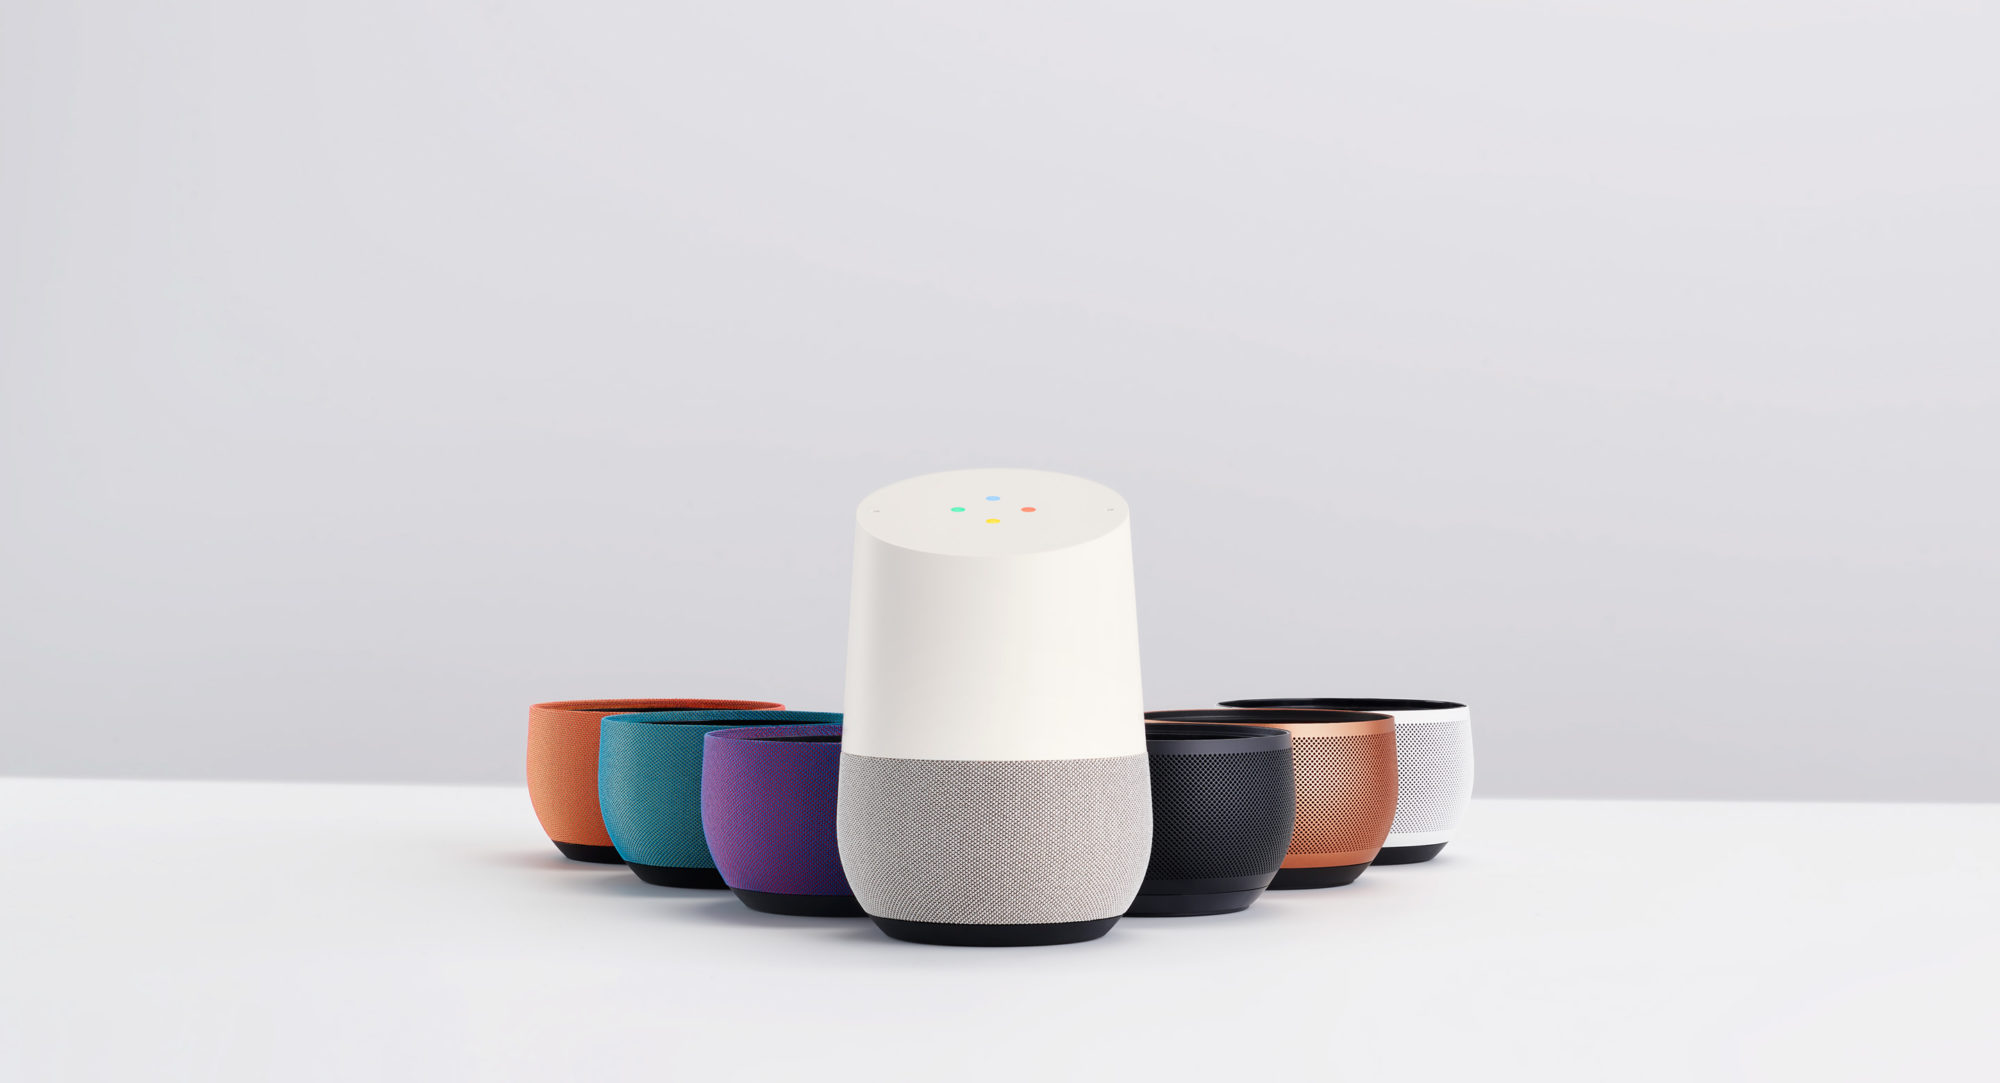 Android designer essential Google Google Home home smart